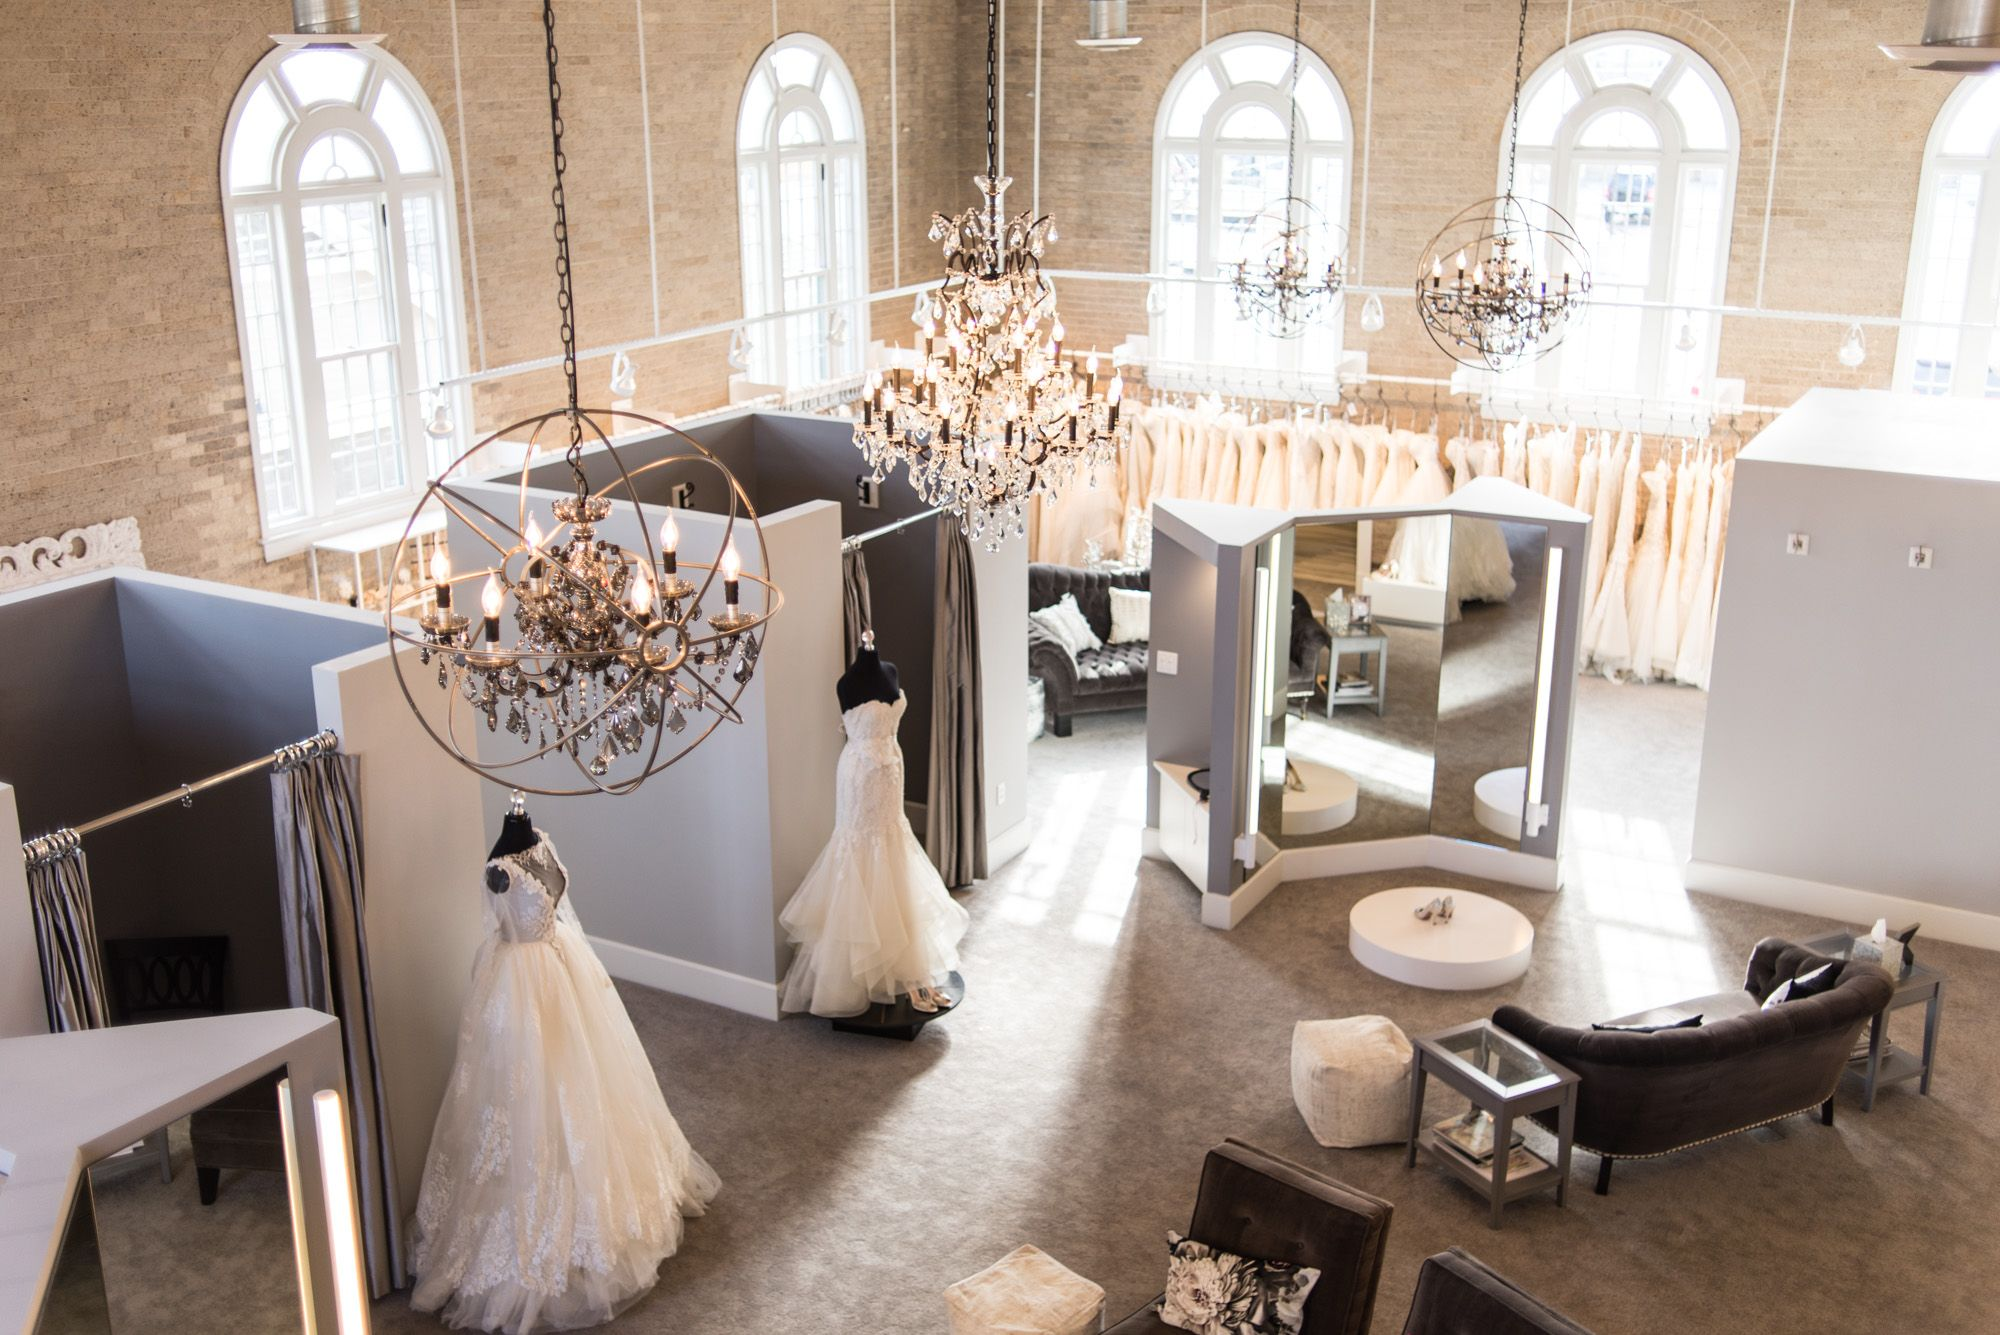 LWD Brings Style and Choice to Colorado Brides